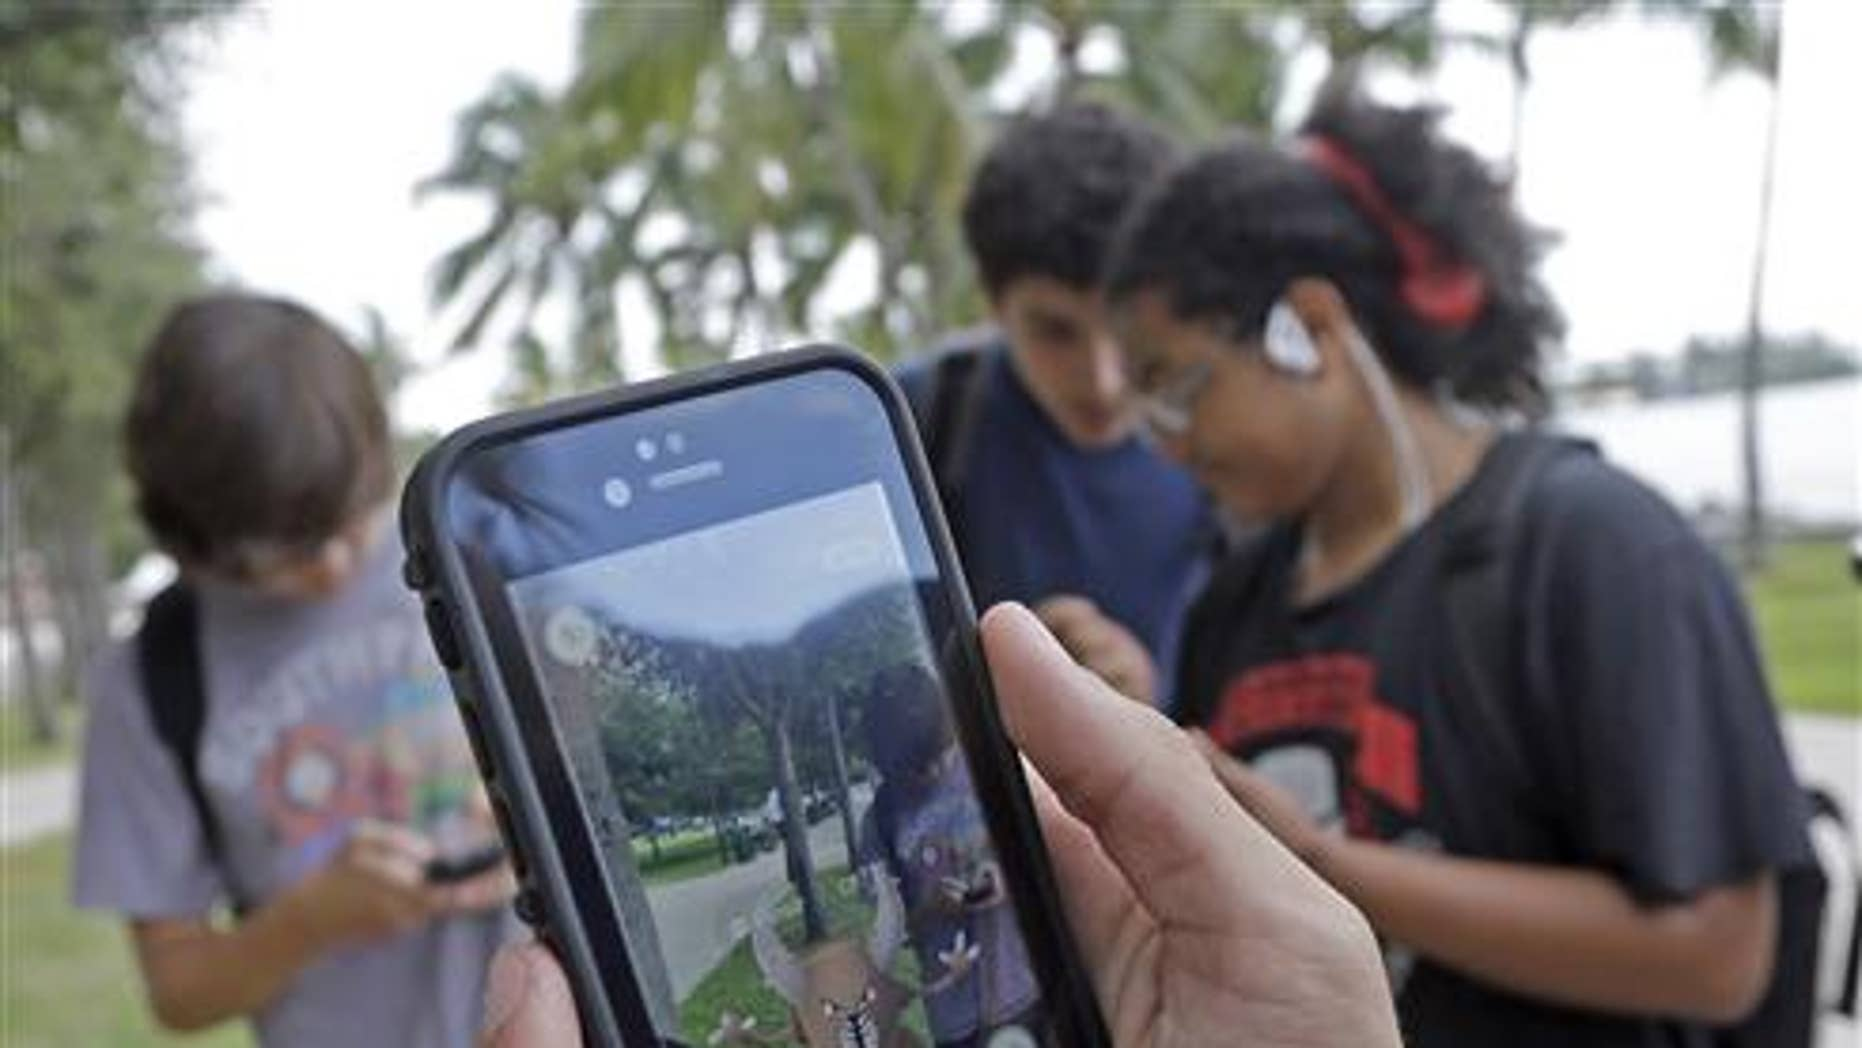 "Pinsir, a Pokemon, is found by a group of Pokemon Go players at Bayfront Park in downtown Miami on July 12, 2016, as the ""Pokemon Go"" craze has sent legions of players hiking around cities and battling with ""pocket monsters"" on their smartphones. (AP Photo/Alan Diaz)"